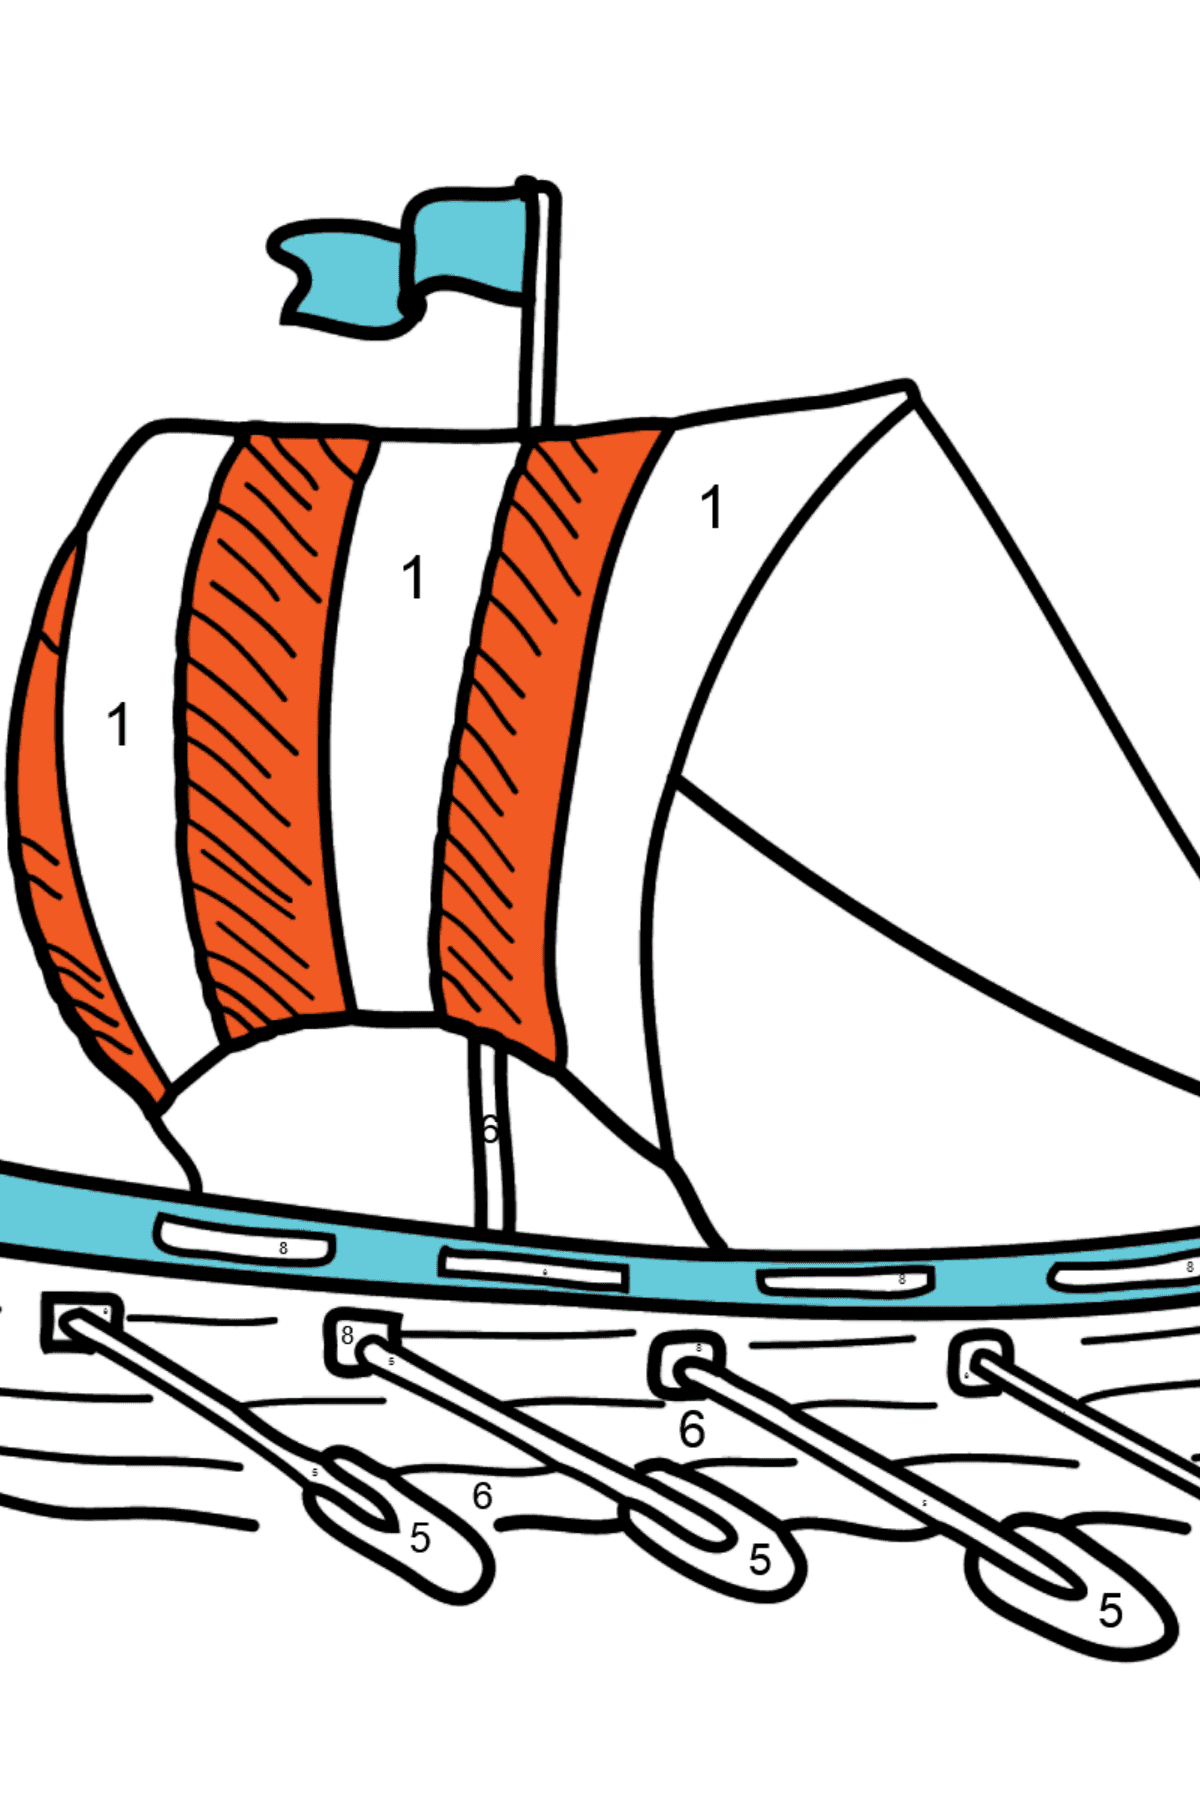 Coloring Page - A River Rowing Boat - Coloring by Numbers for Kids